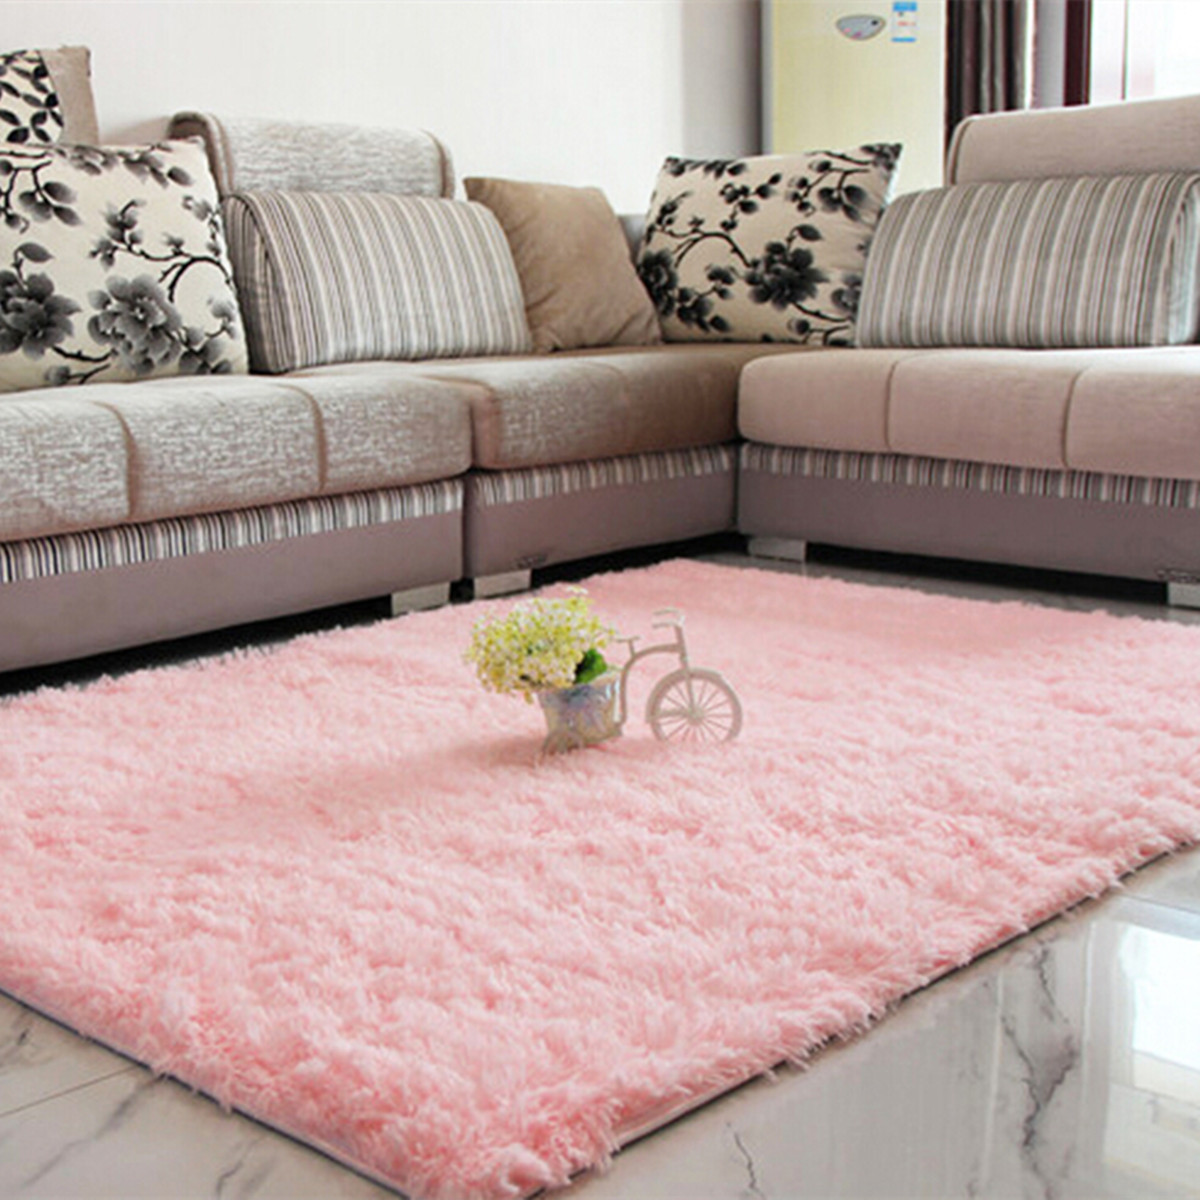 Modern Soft Fluffy Floor Rug Shag Shaggy Area Rug Bedroom Dining Room  Carpet Yoga Mat - 6 Colors